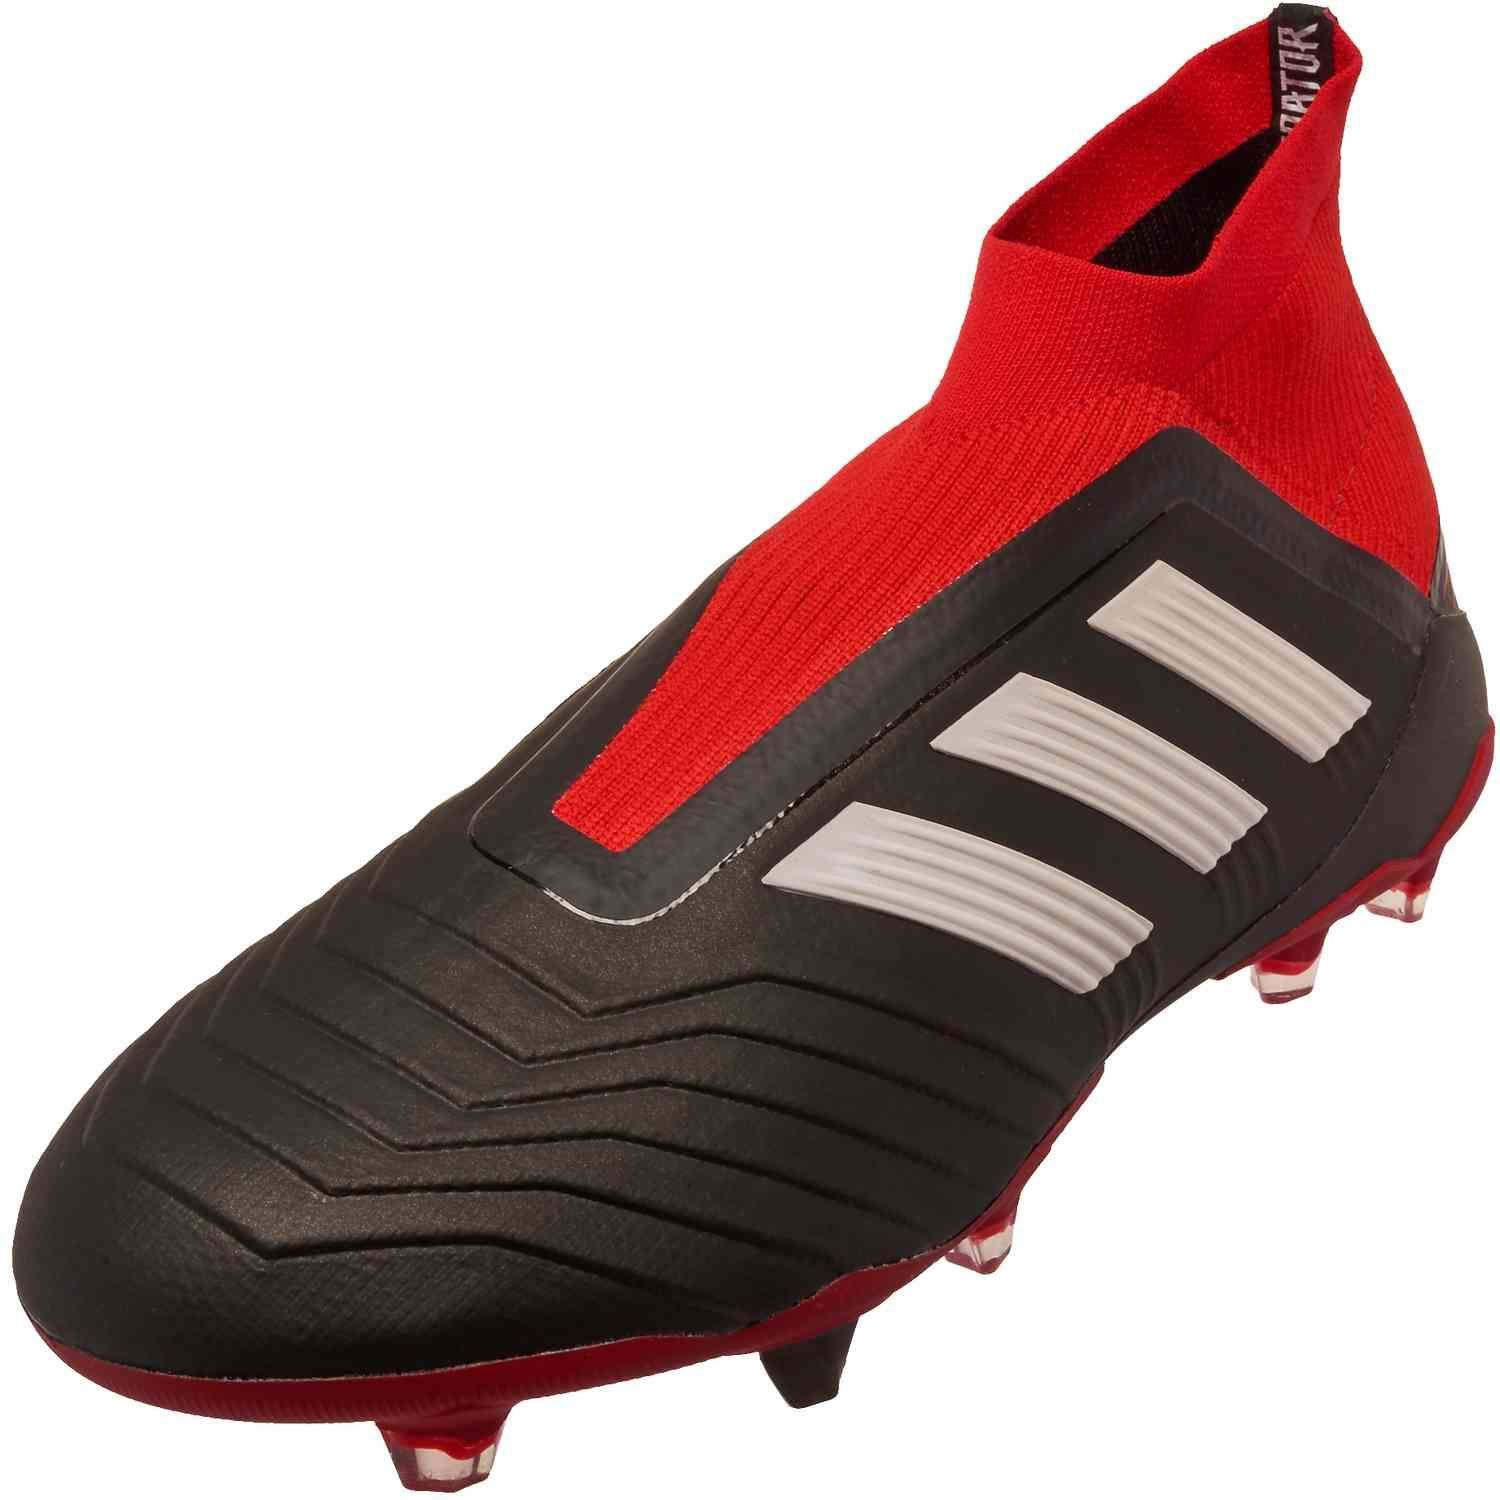 watch bbce2 2cfd3 Team Mode pack adidas Predator 18+ Shop for yours from SoccerPro